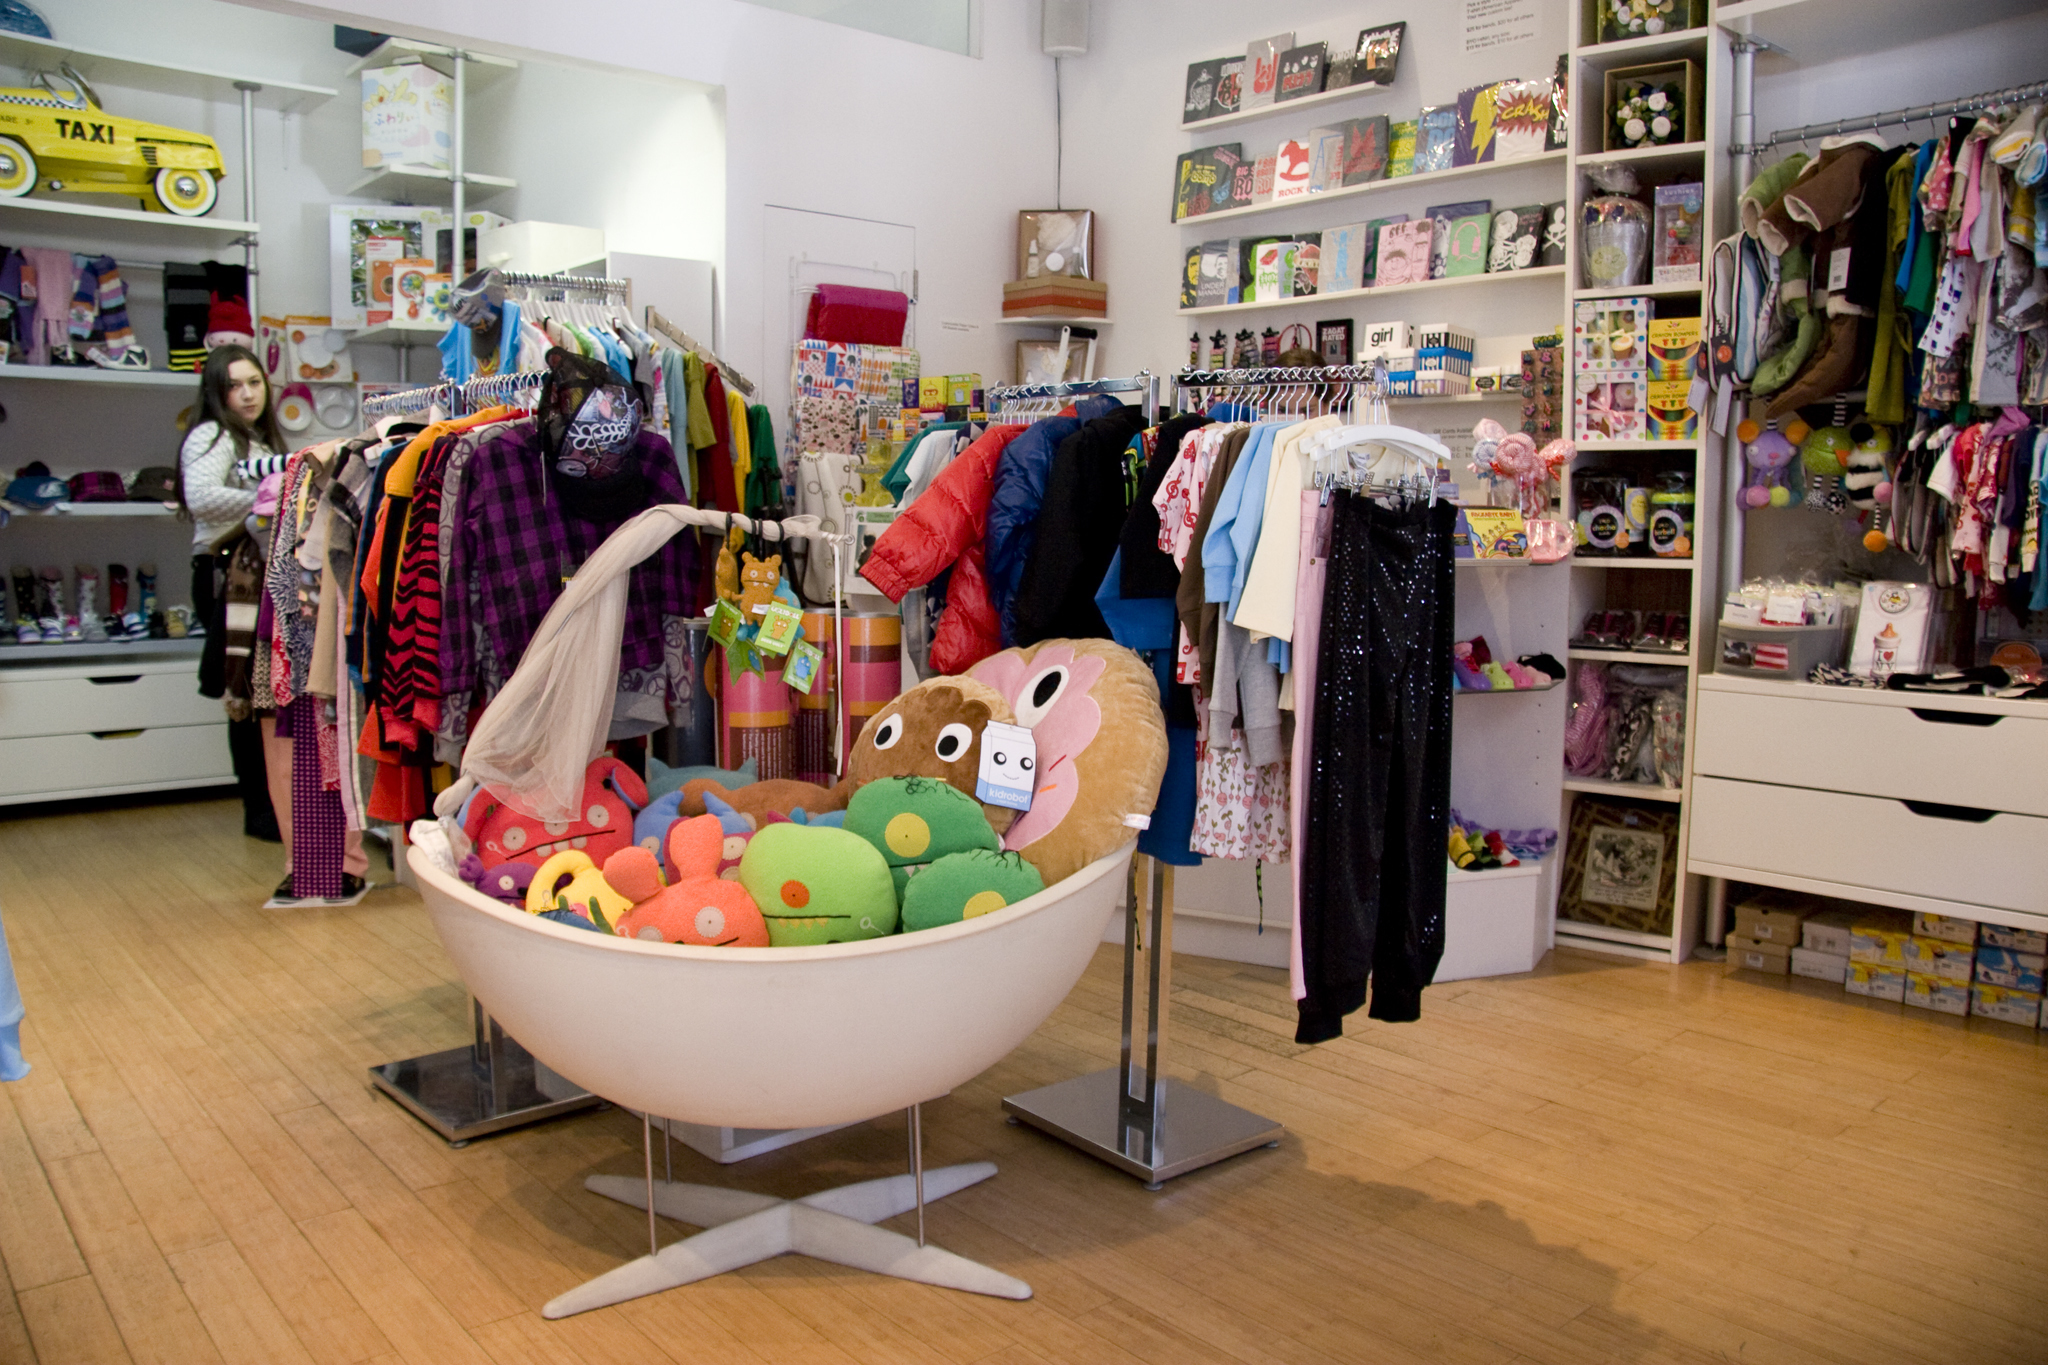 Reviews on Baby Stores in New York, NY - Lullaby Baby, Brooklyn Baby World, Sprout San Francisco, Piccoliny, The Baby Store, Wild Was Mama, Smoochie Baby, Buy Buy Baby.